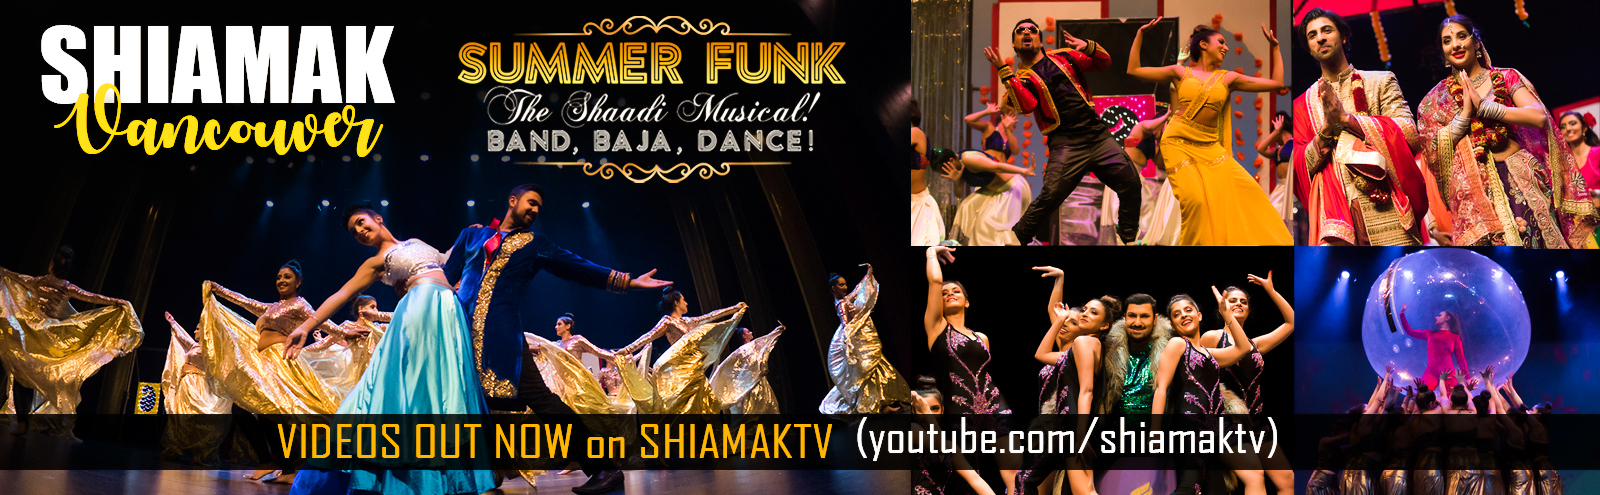 Summer Funk - The SHAADI Musical